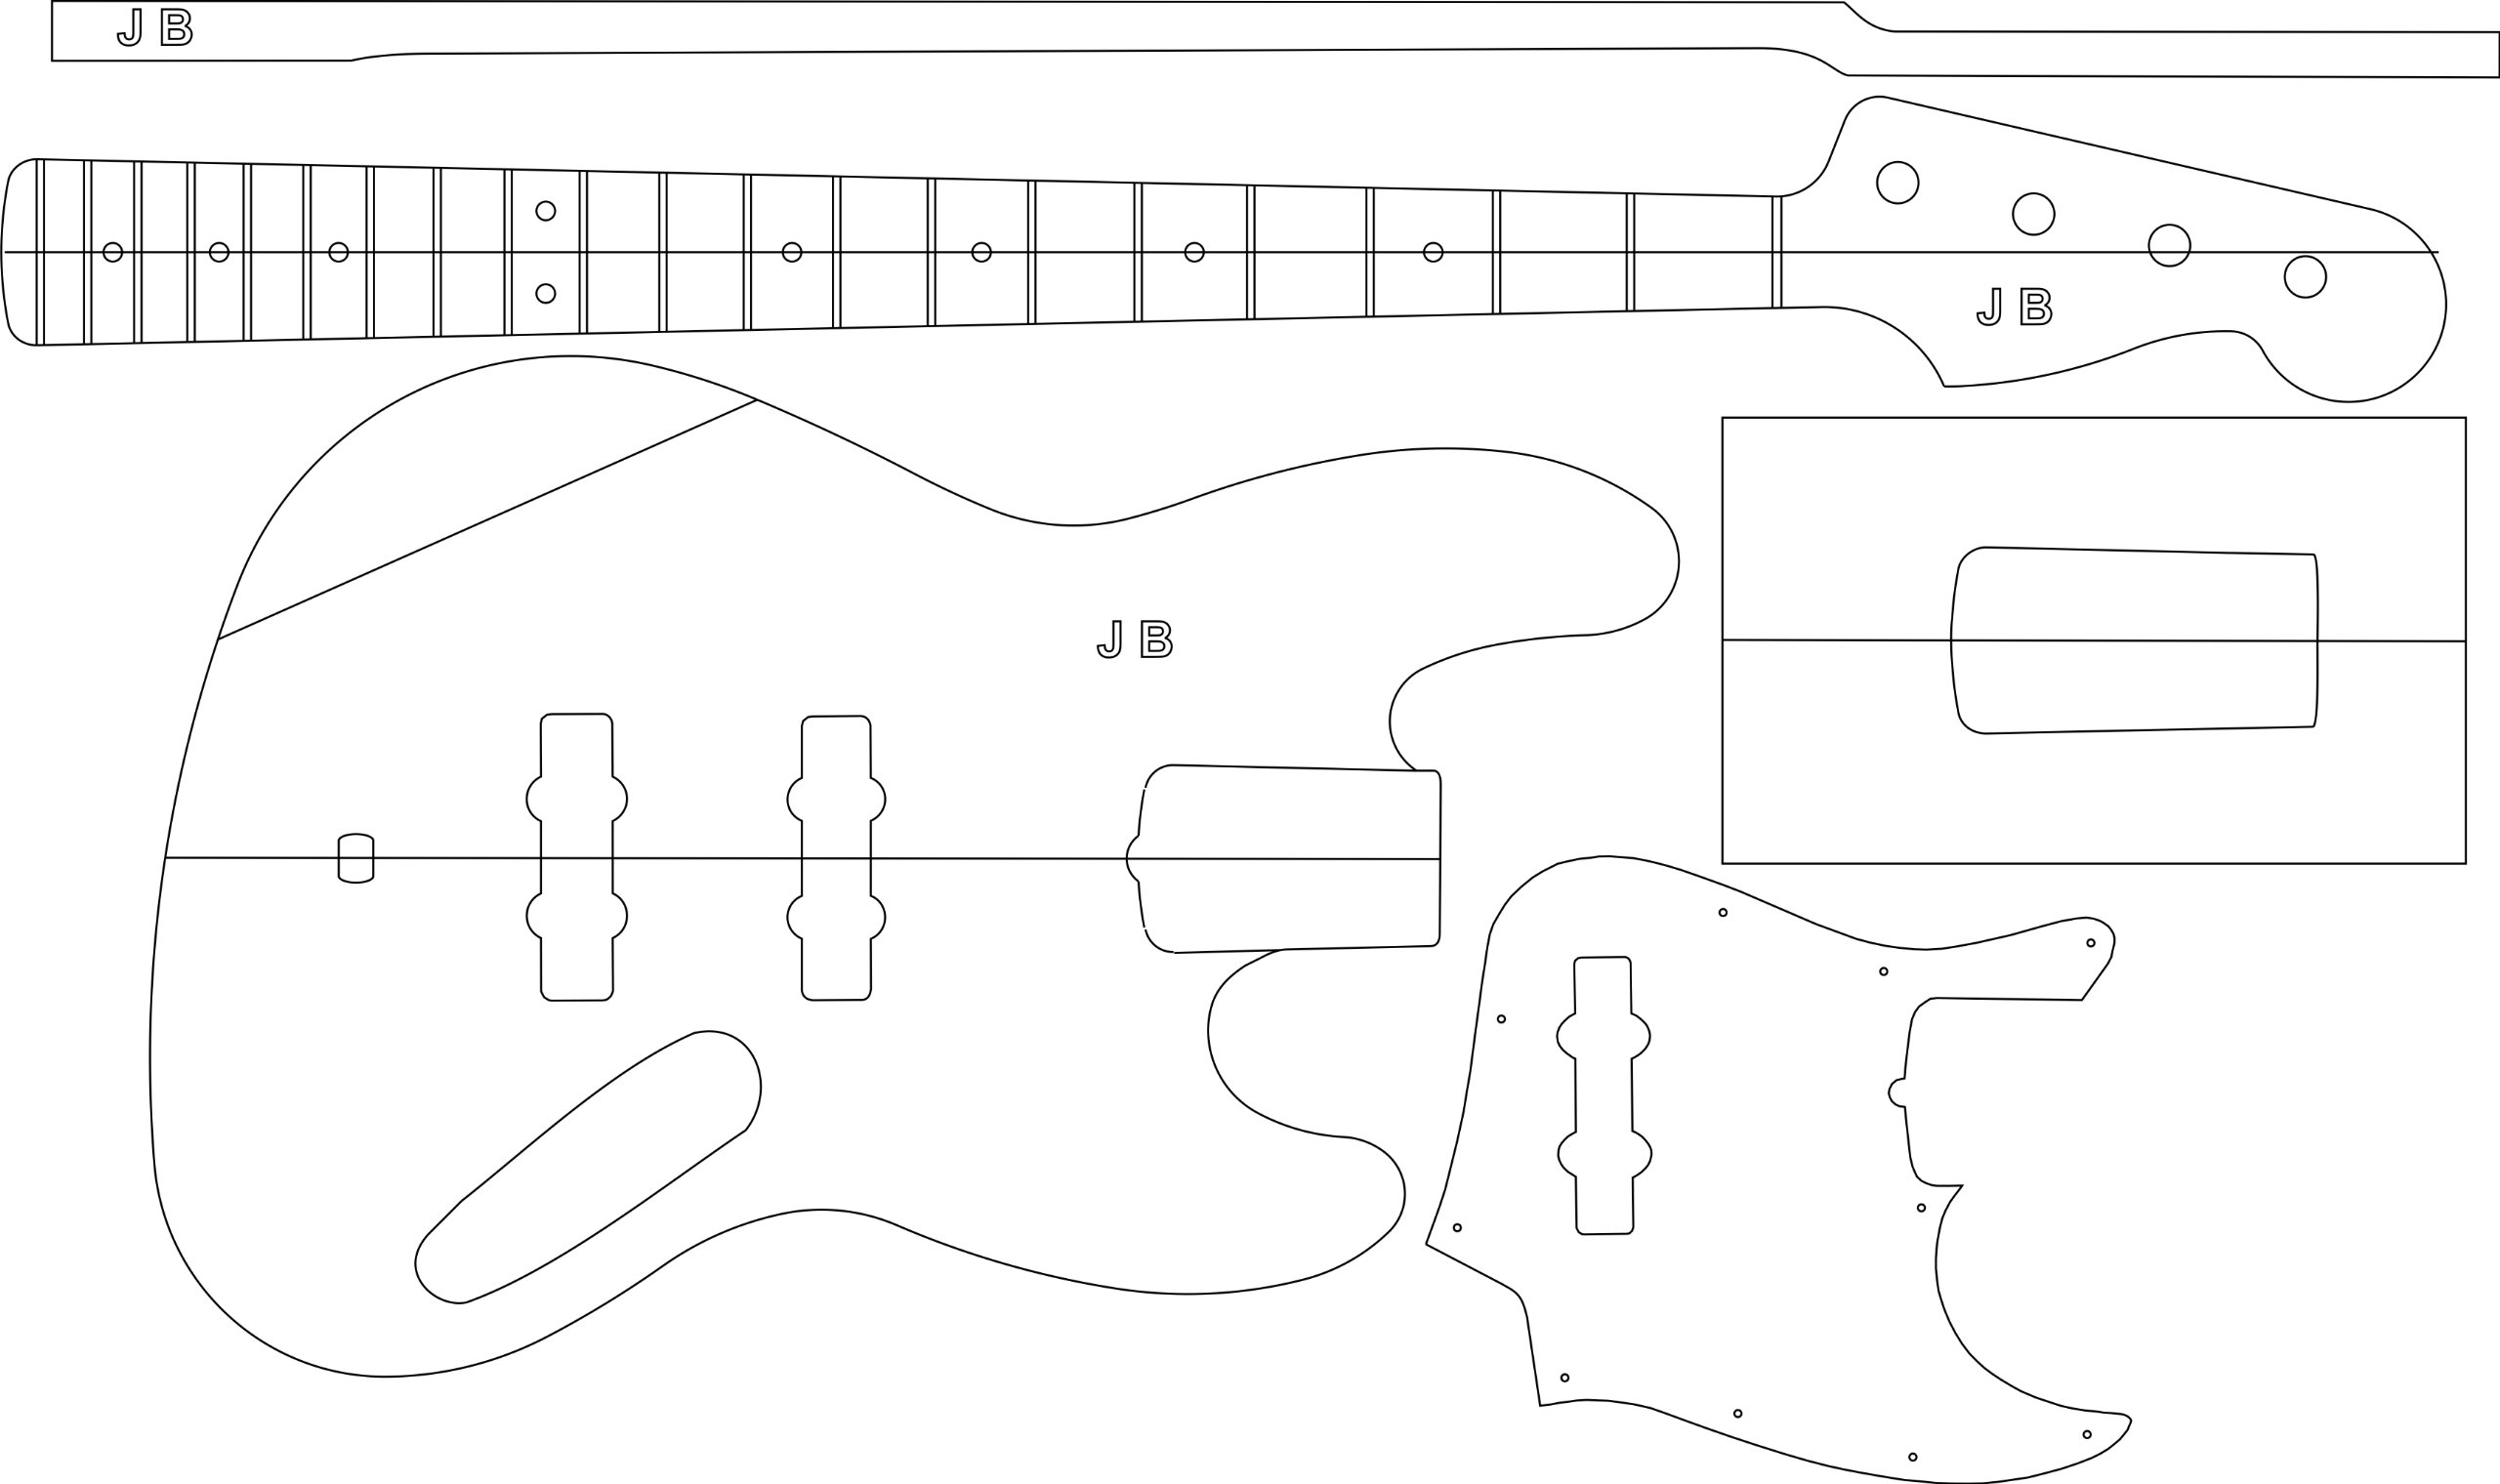 Electric Guitar Routing Template - J bass